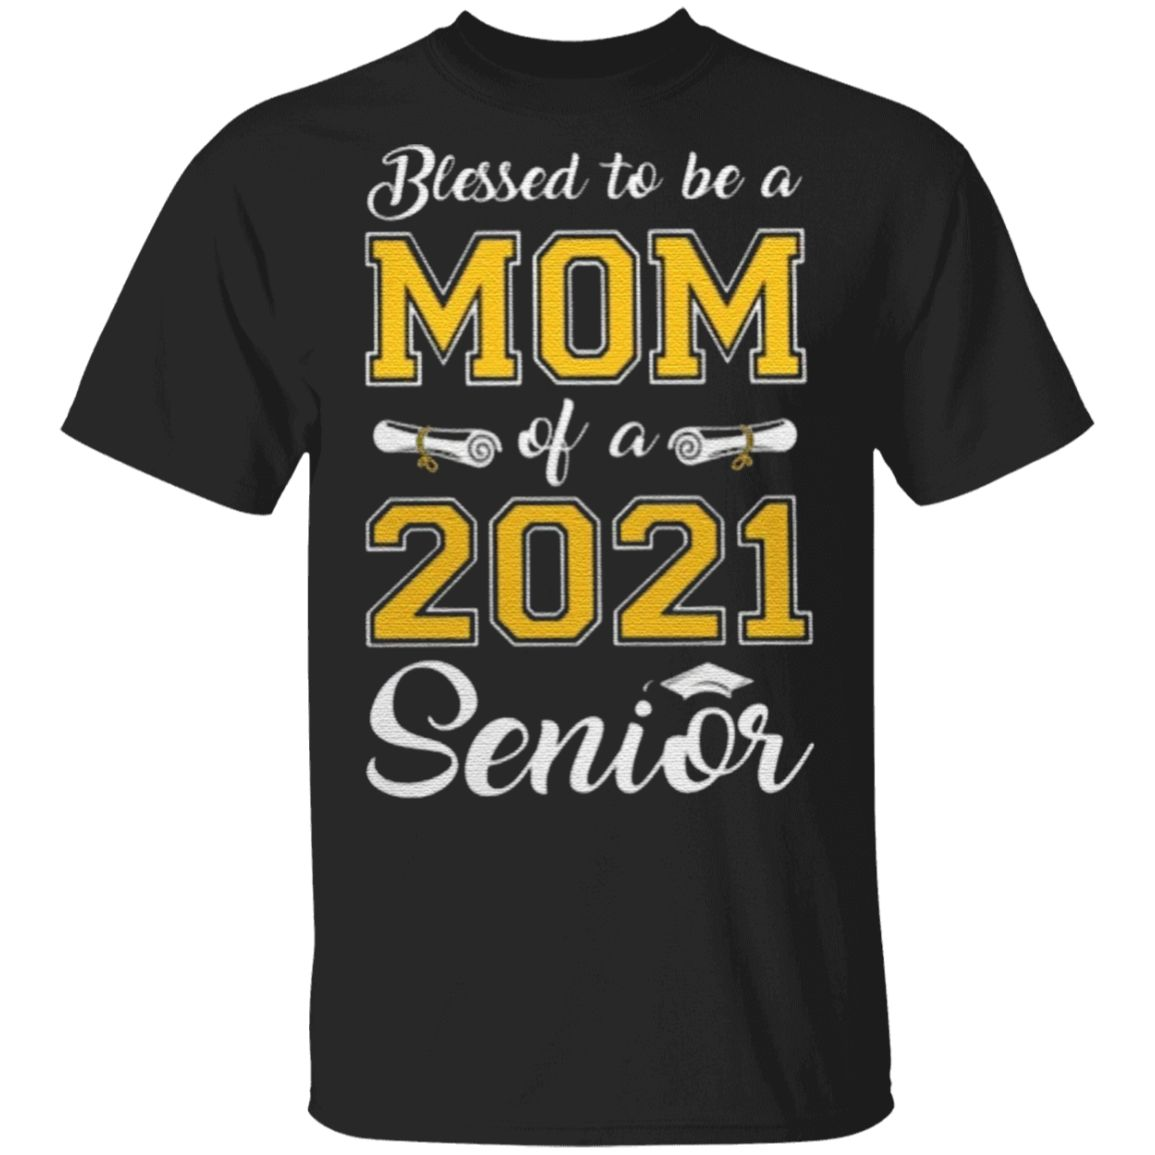 Blessed To Be A Mom Of A 2021 Senior TShirt